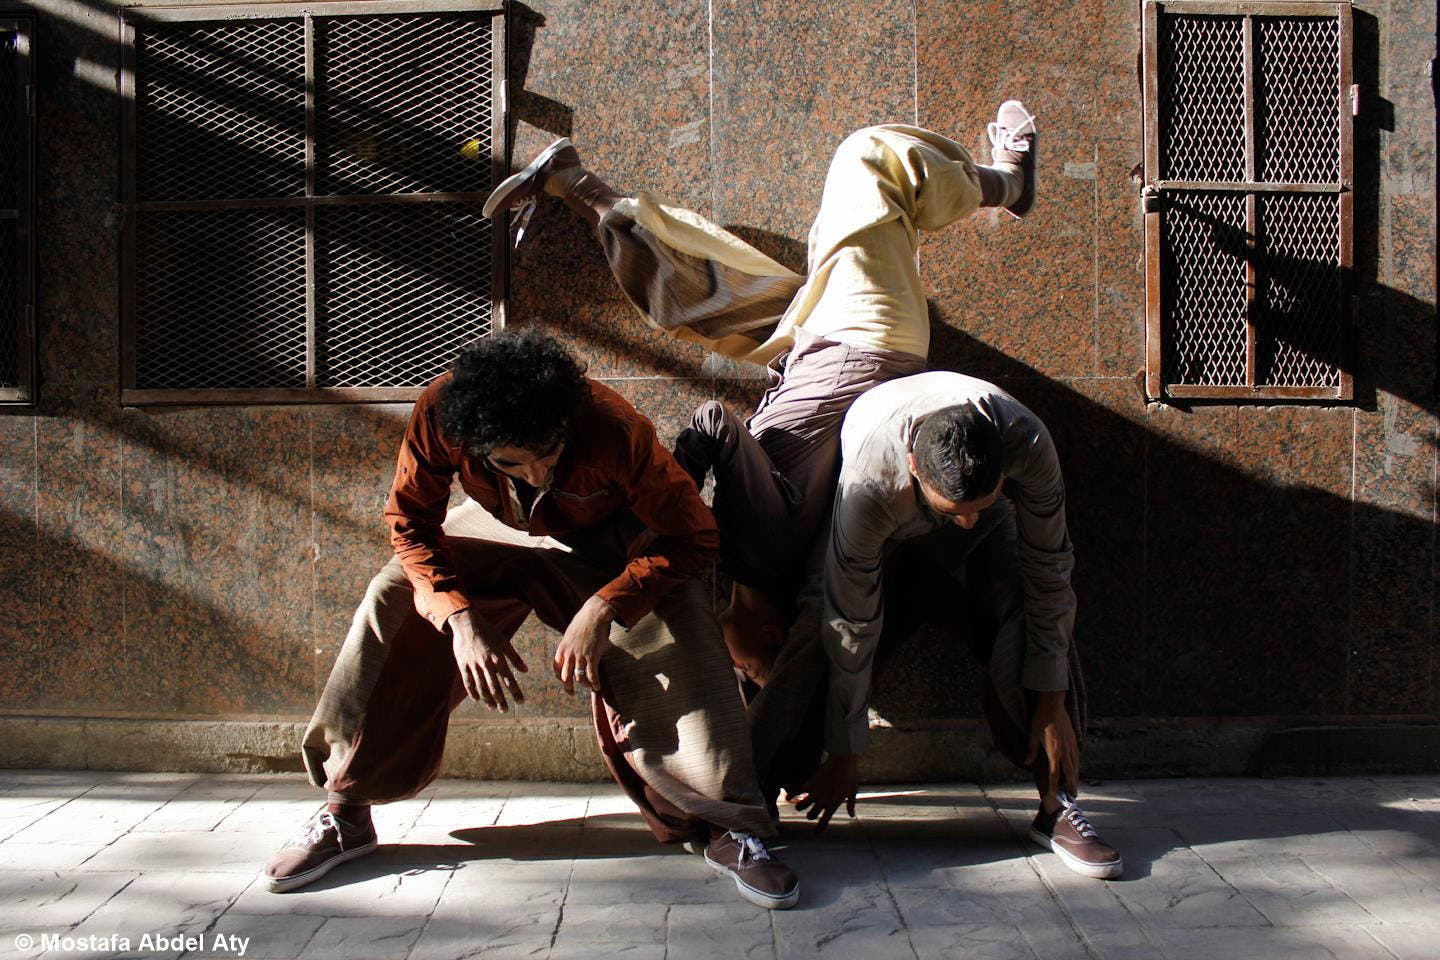 Downtown Cairo has been showing off mad contemporary dance skillz before at the contemporary arts festival. (Image: Facebook)